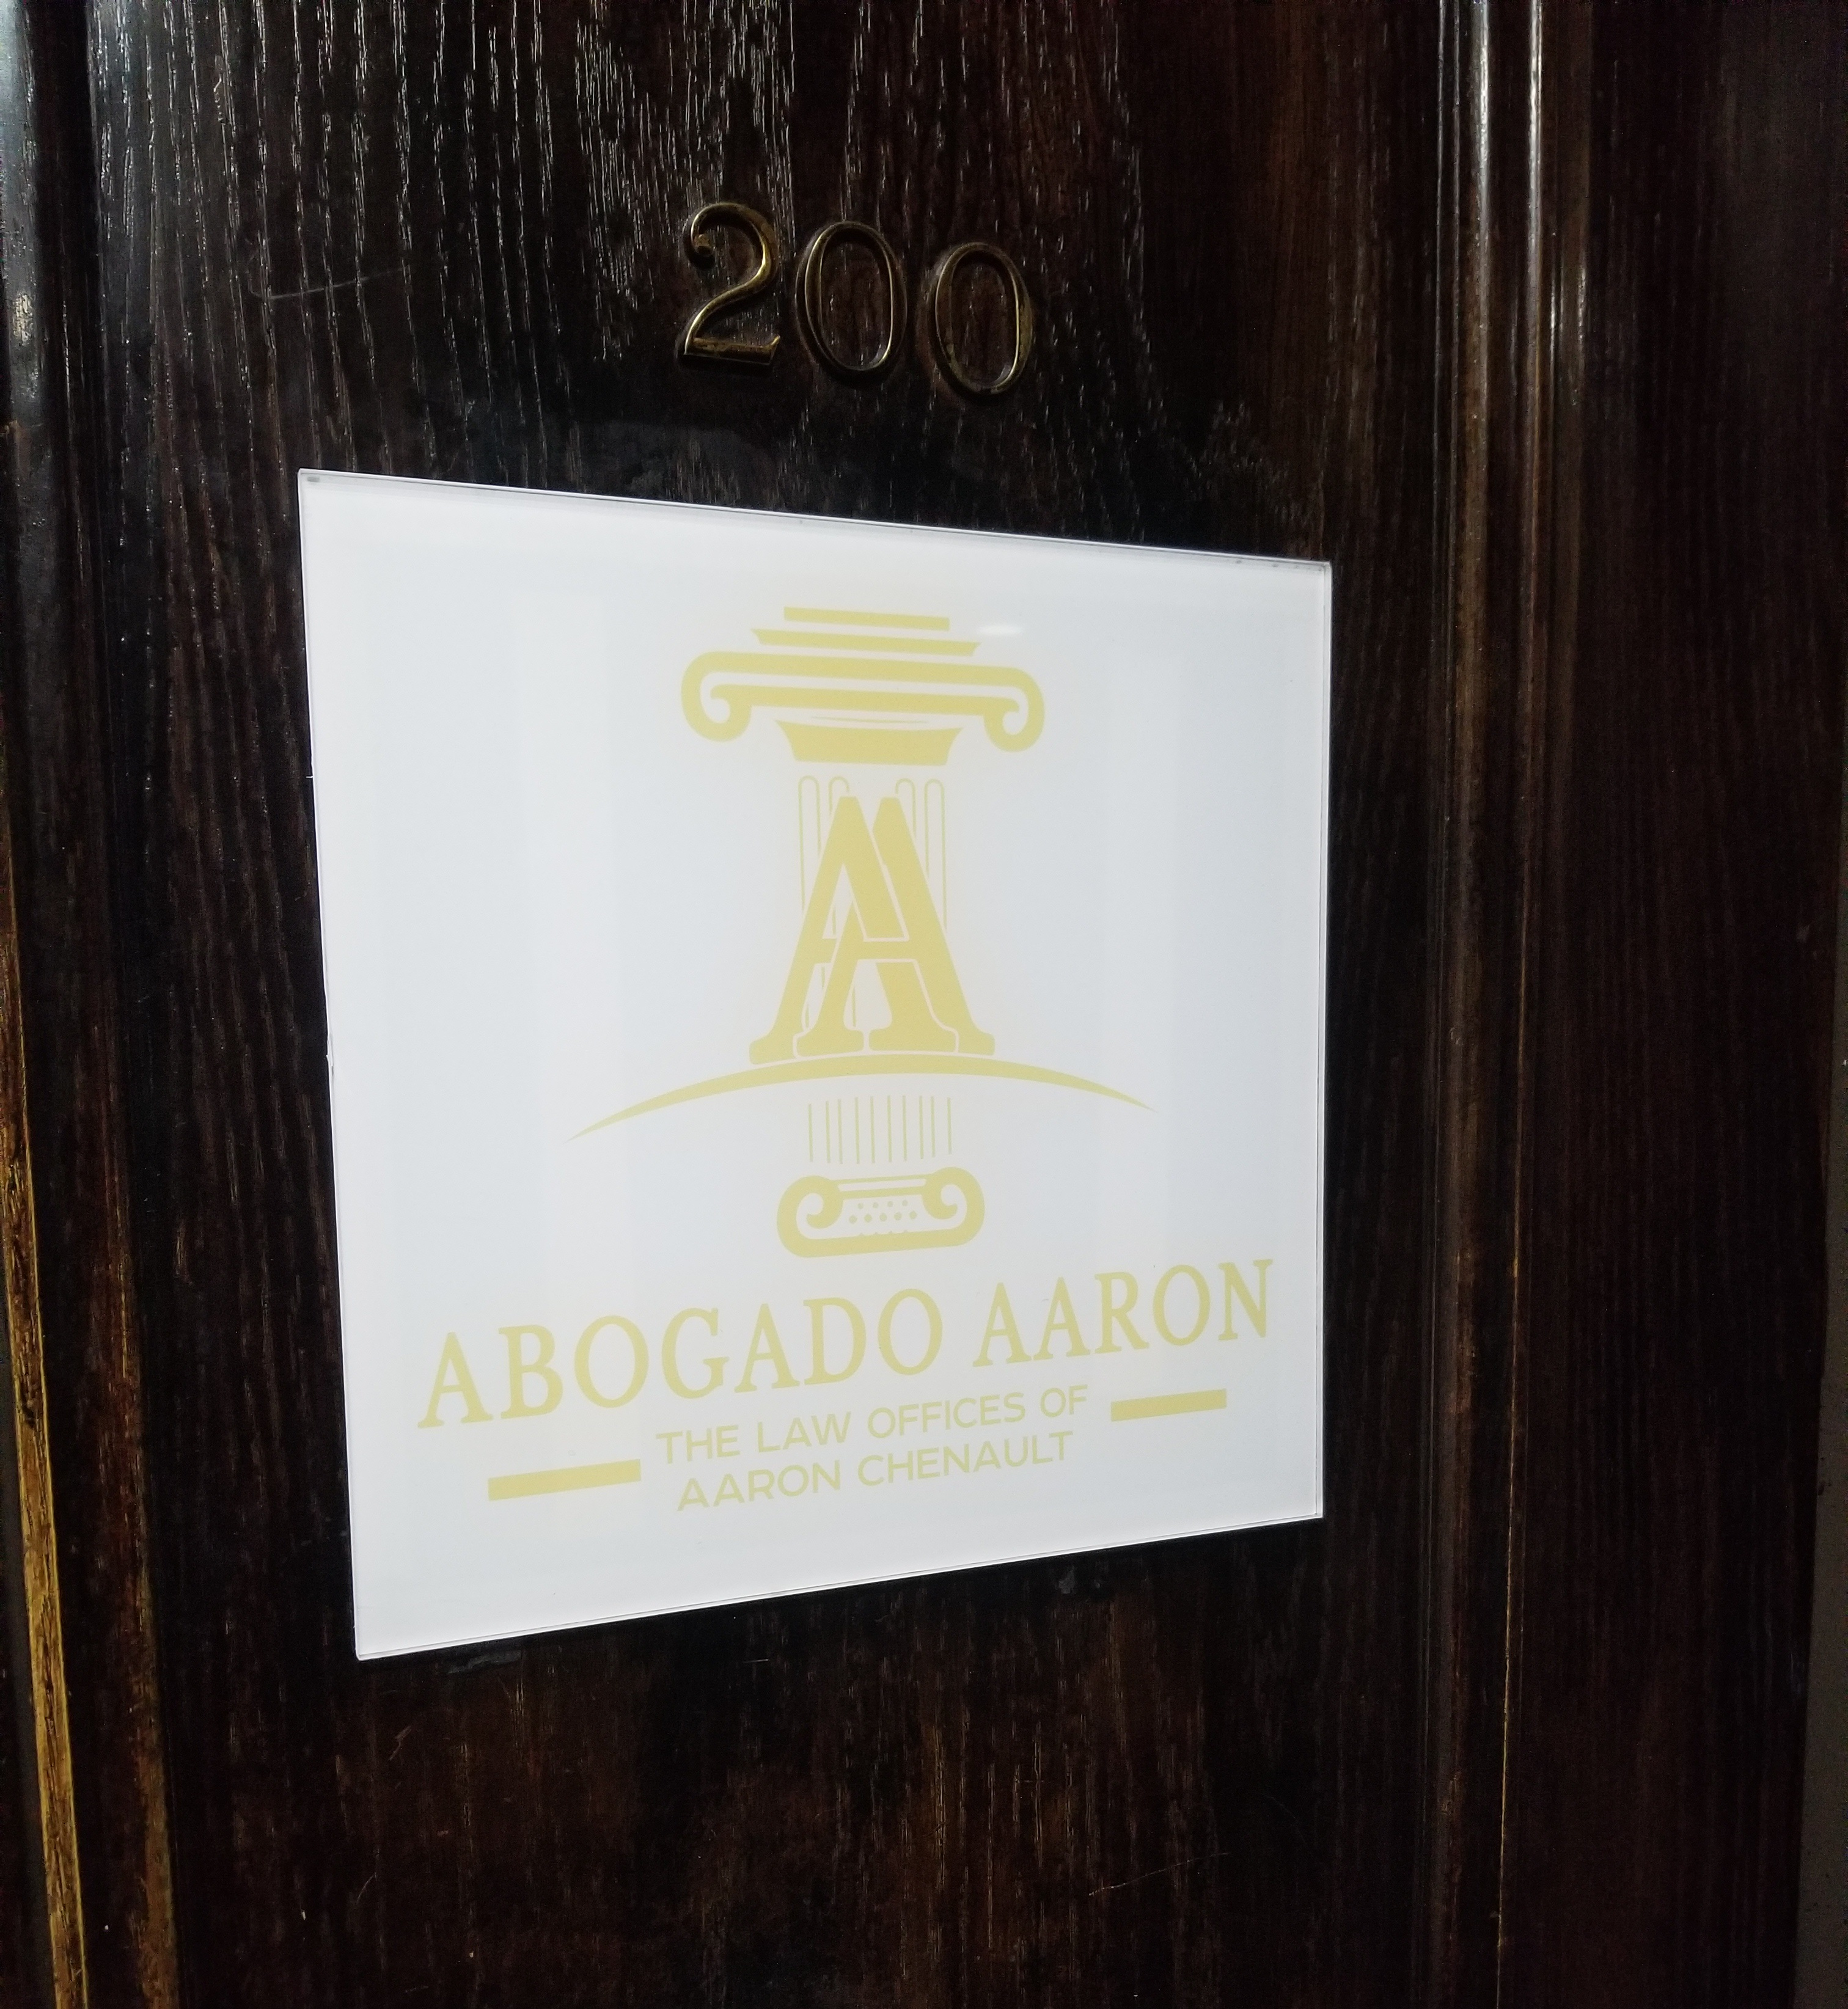 This is the custom gold lobby sign we made for Abogado Aaron in Los Angeles as part of a wider office design package for the Los Angeles law firm.